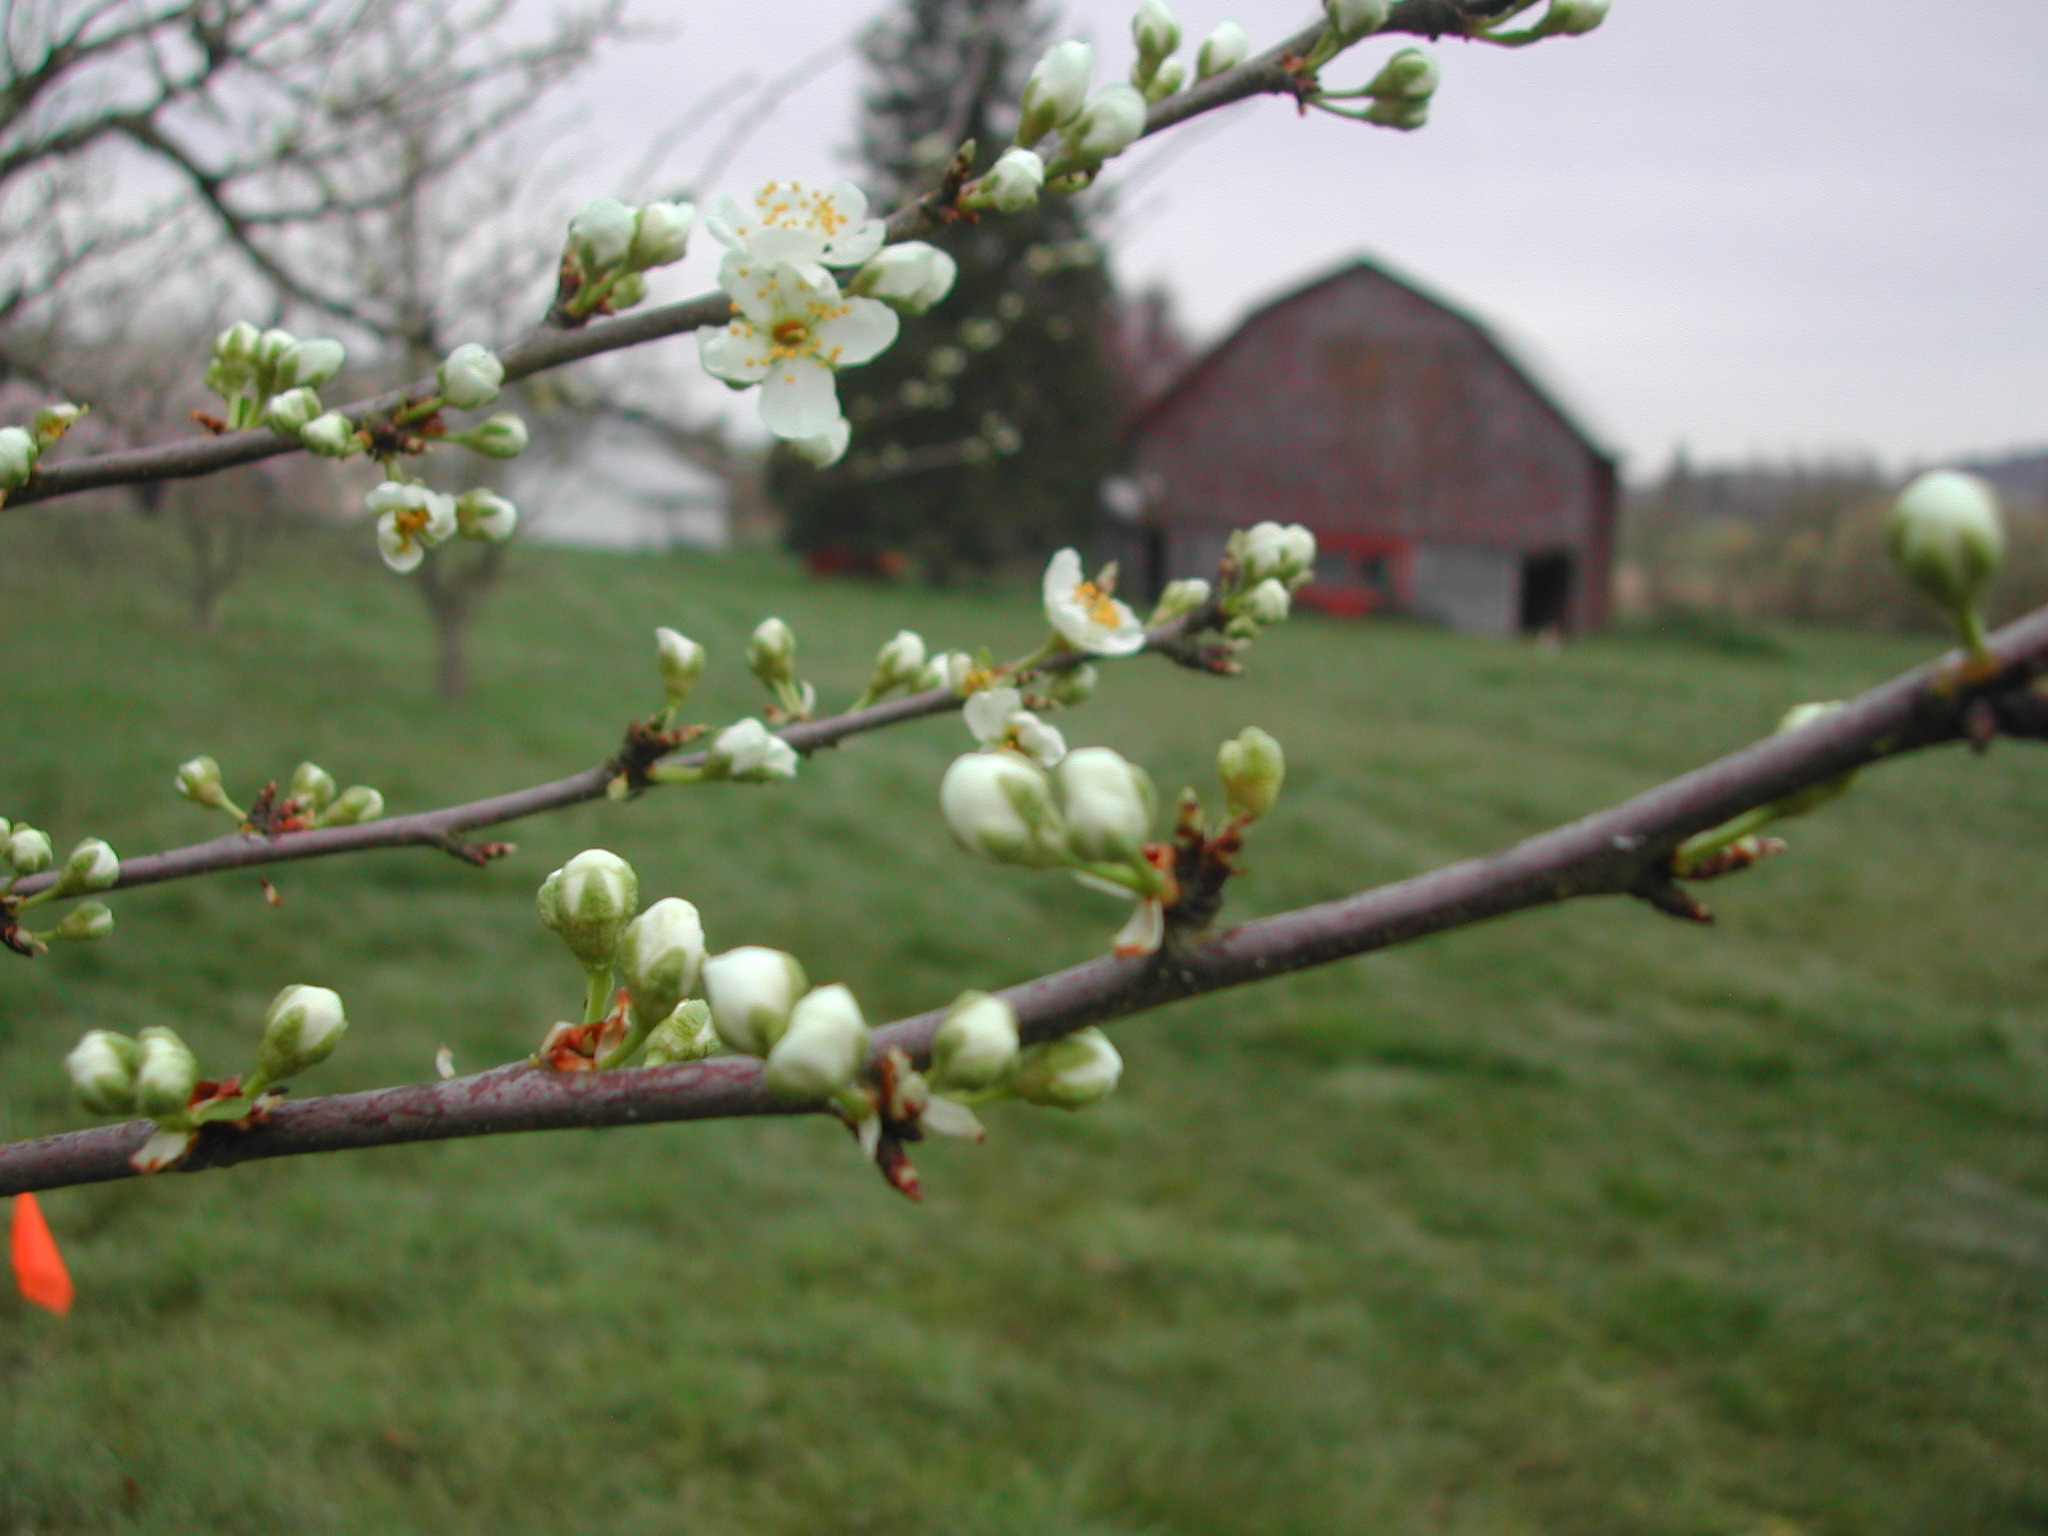 And the blossoms with a barn